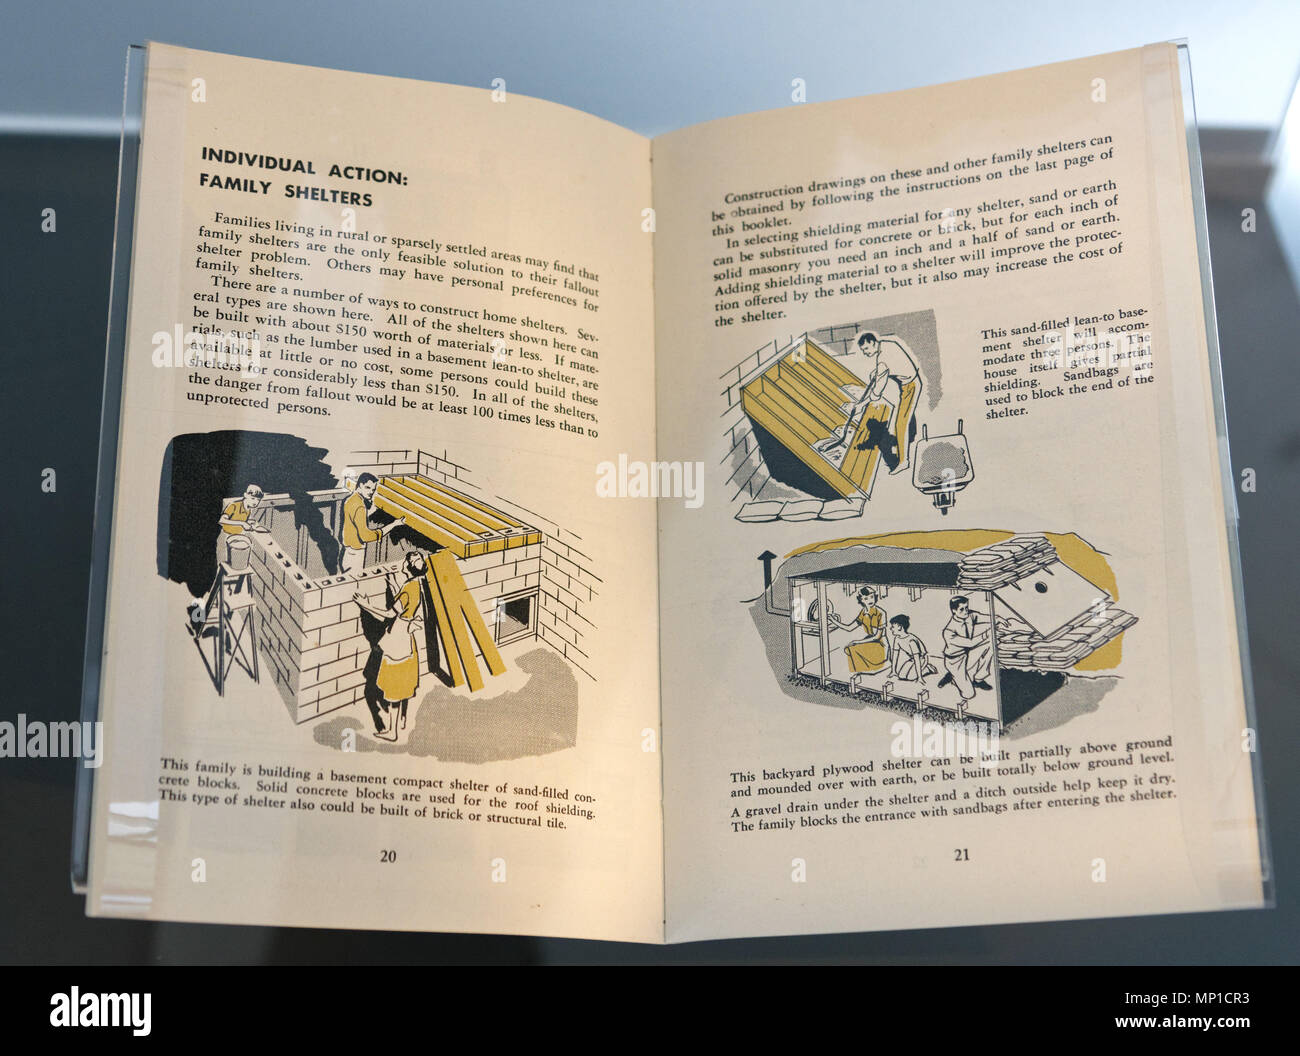 A booklet from the Cold War describing how to build a family shelter in case of nuclear attack - Stock Image